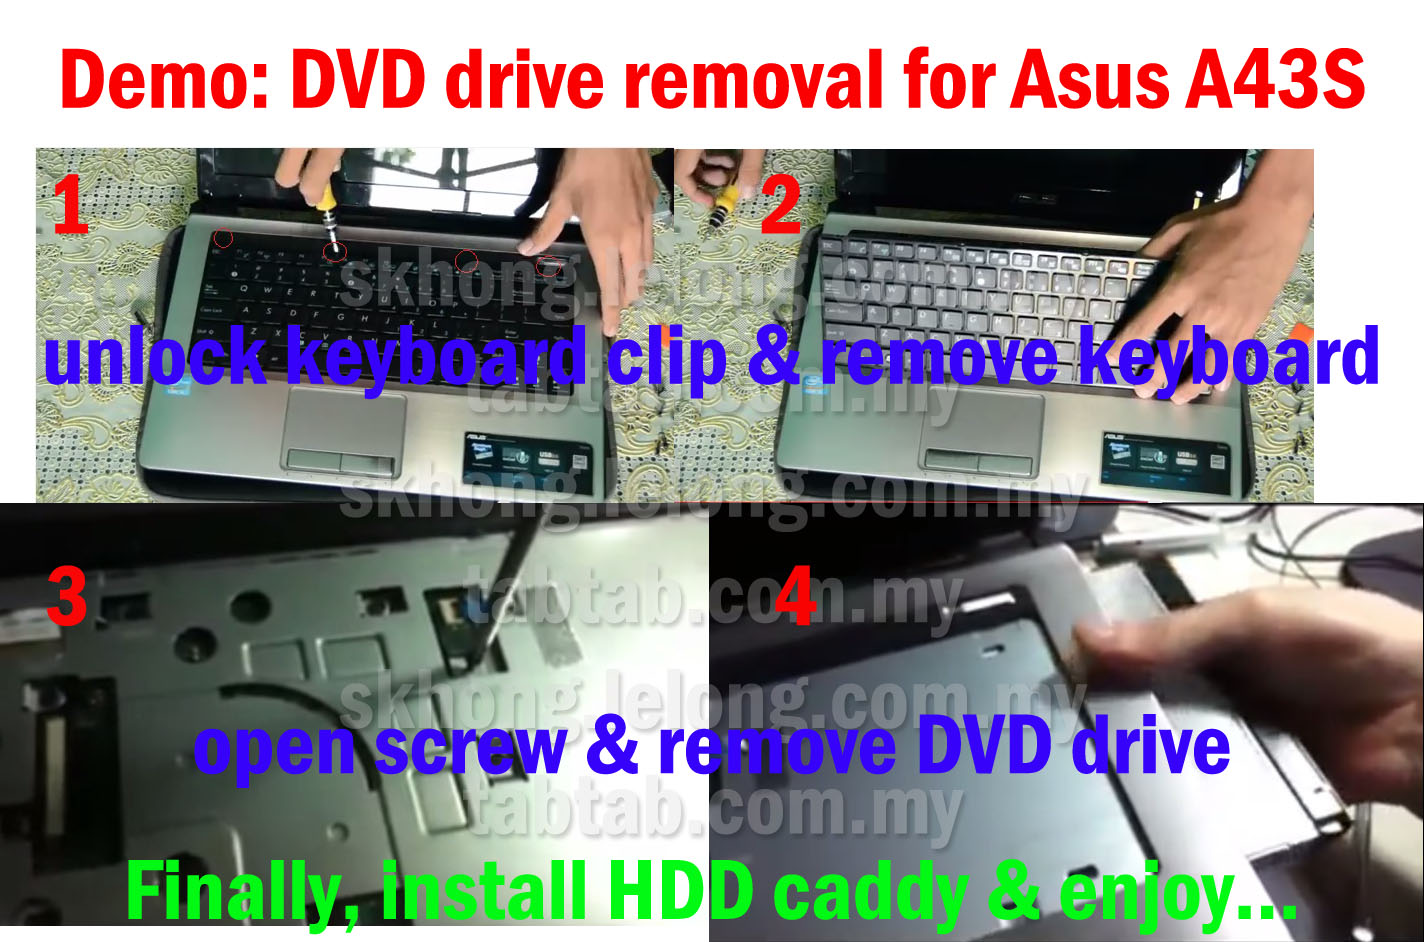 caddy - asus a43s remove dvd drive.jpg